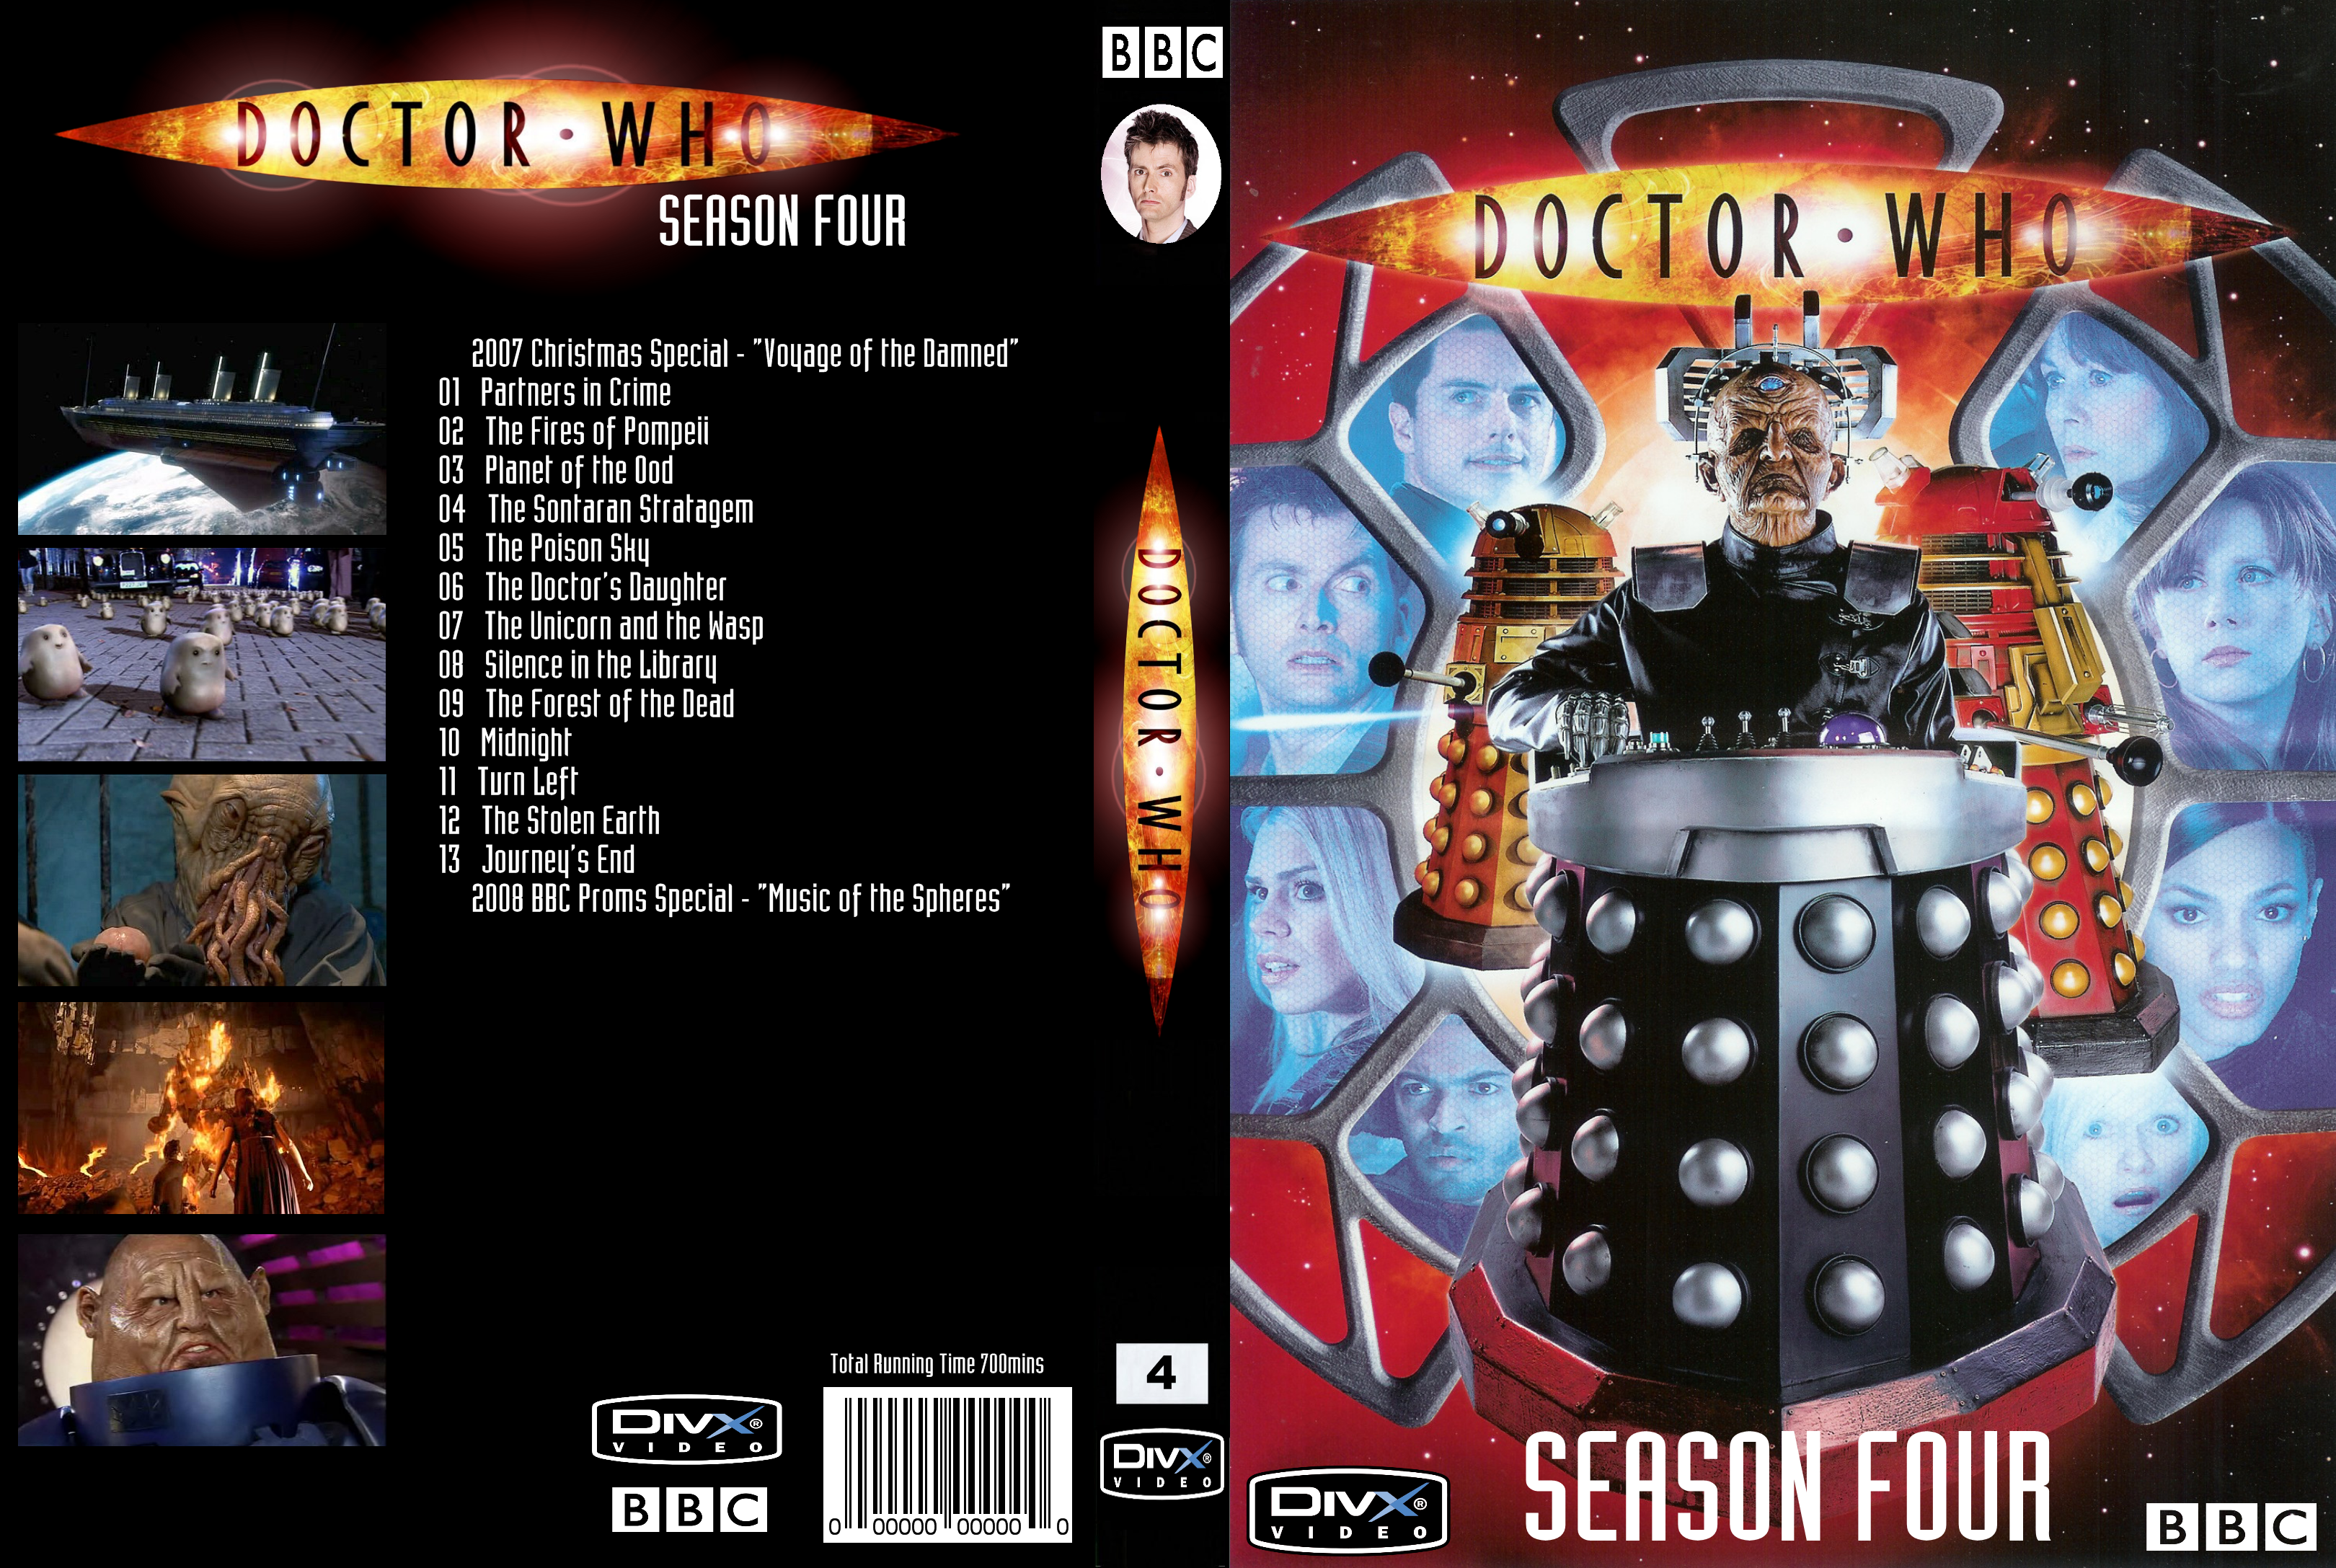 Doctor Who Season 4 DivX Cover by gabe2116 on DeviantArt